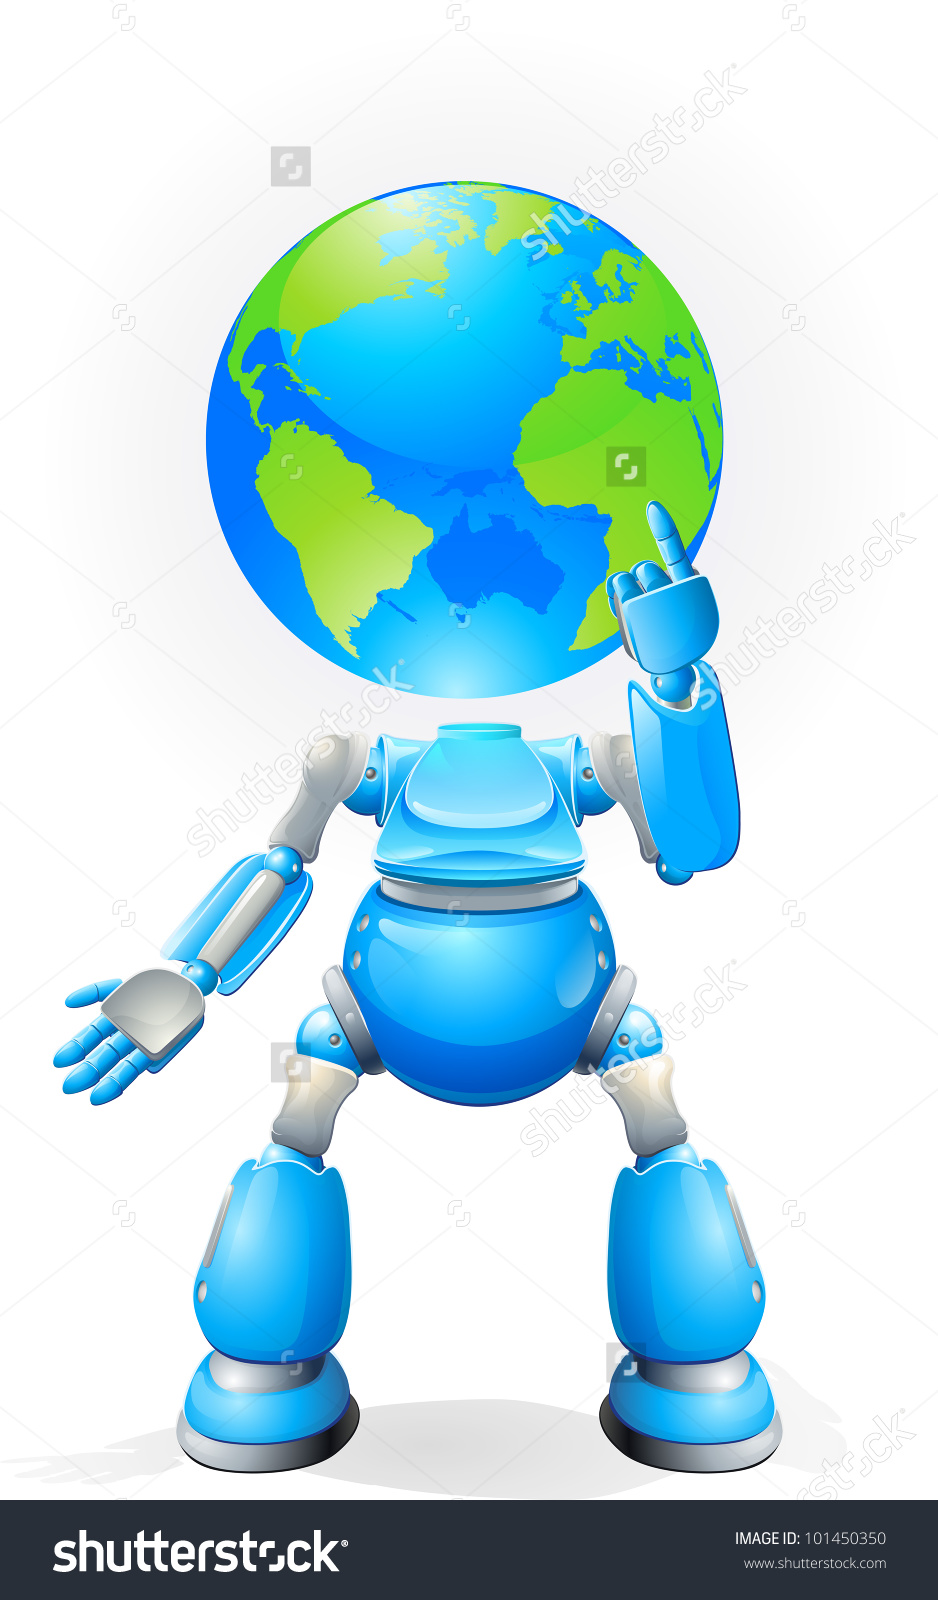 A World Blue Robot With A Globe For A Head. Conceptual.